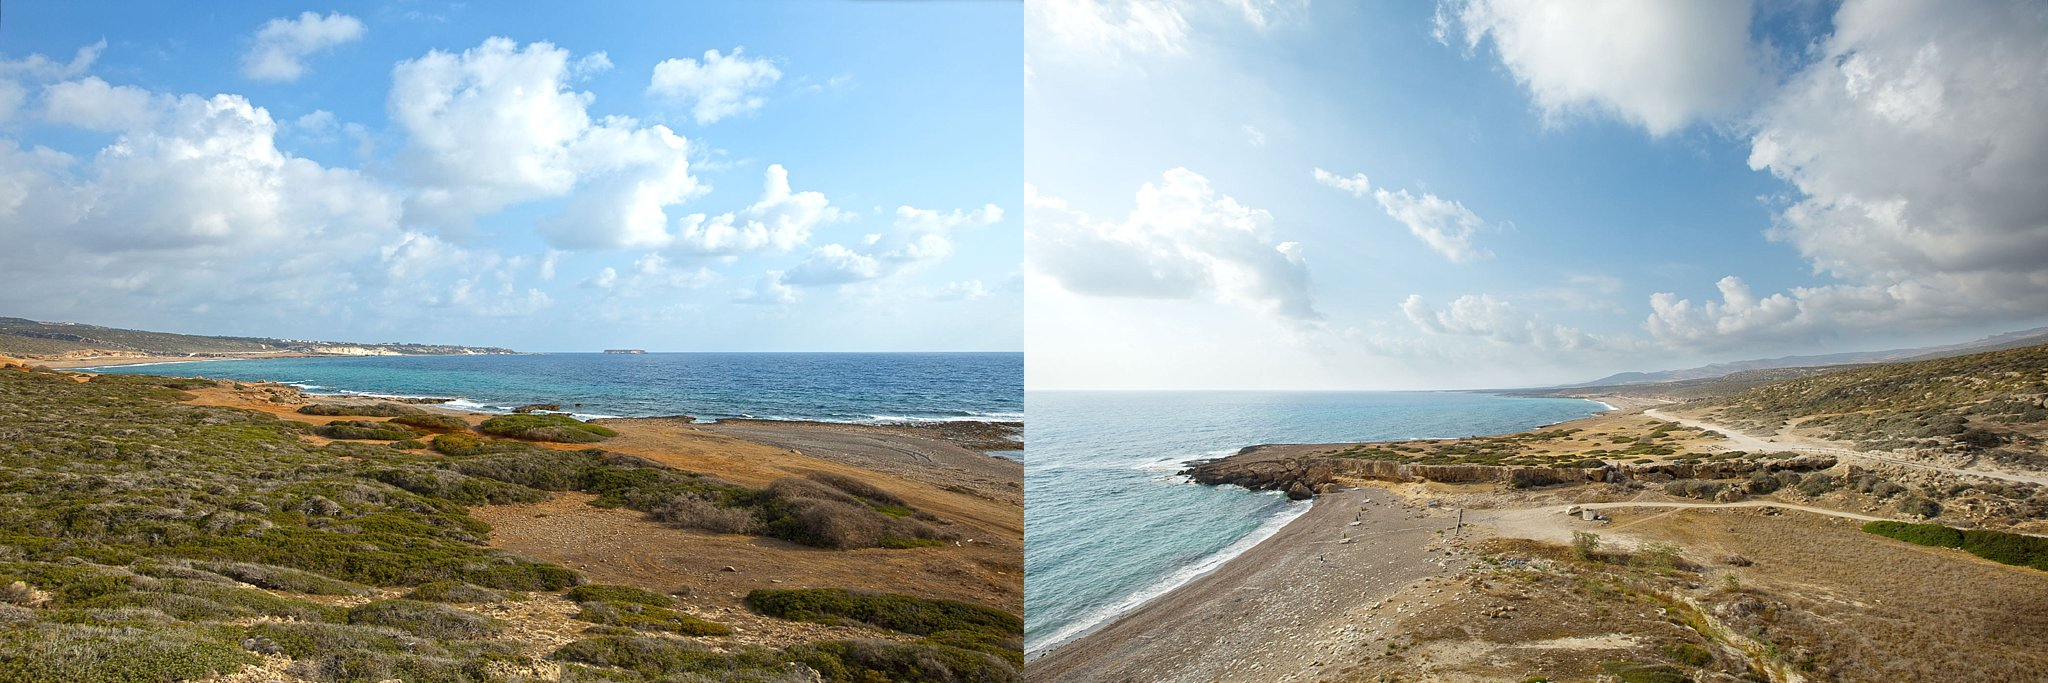 View on the way to & from Lara Bay in Cyprus